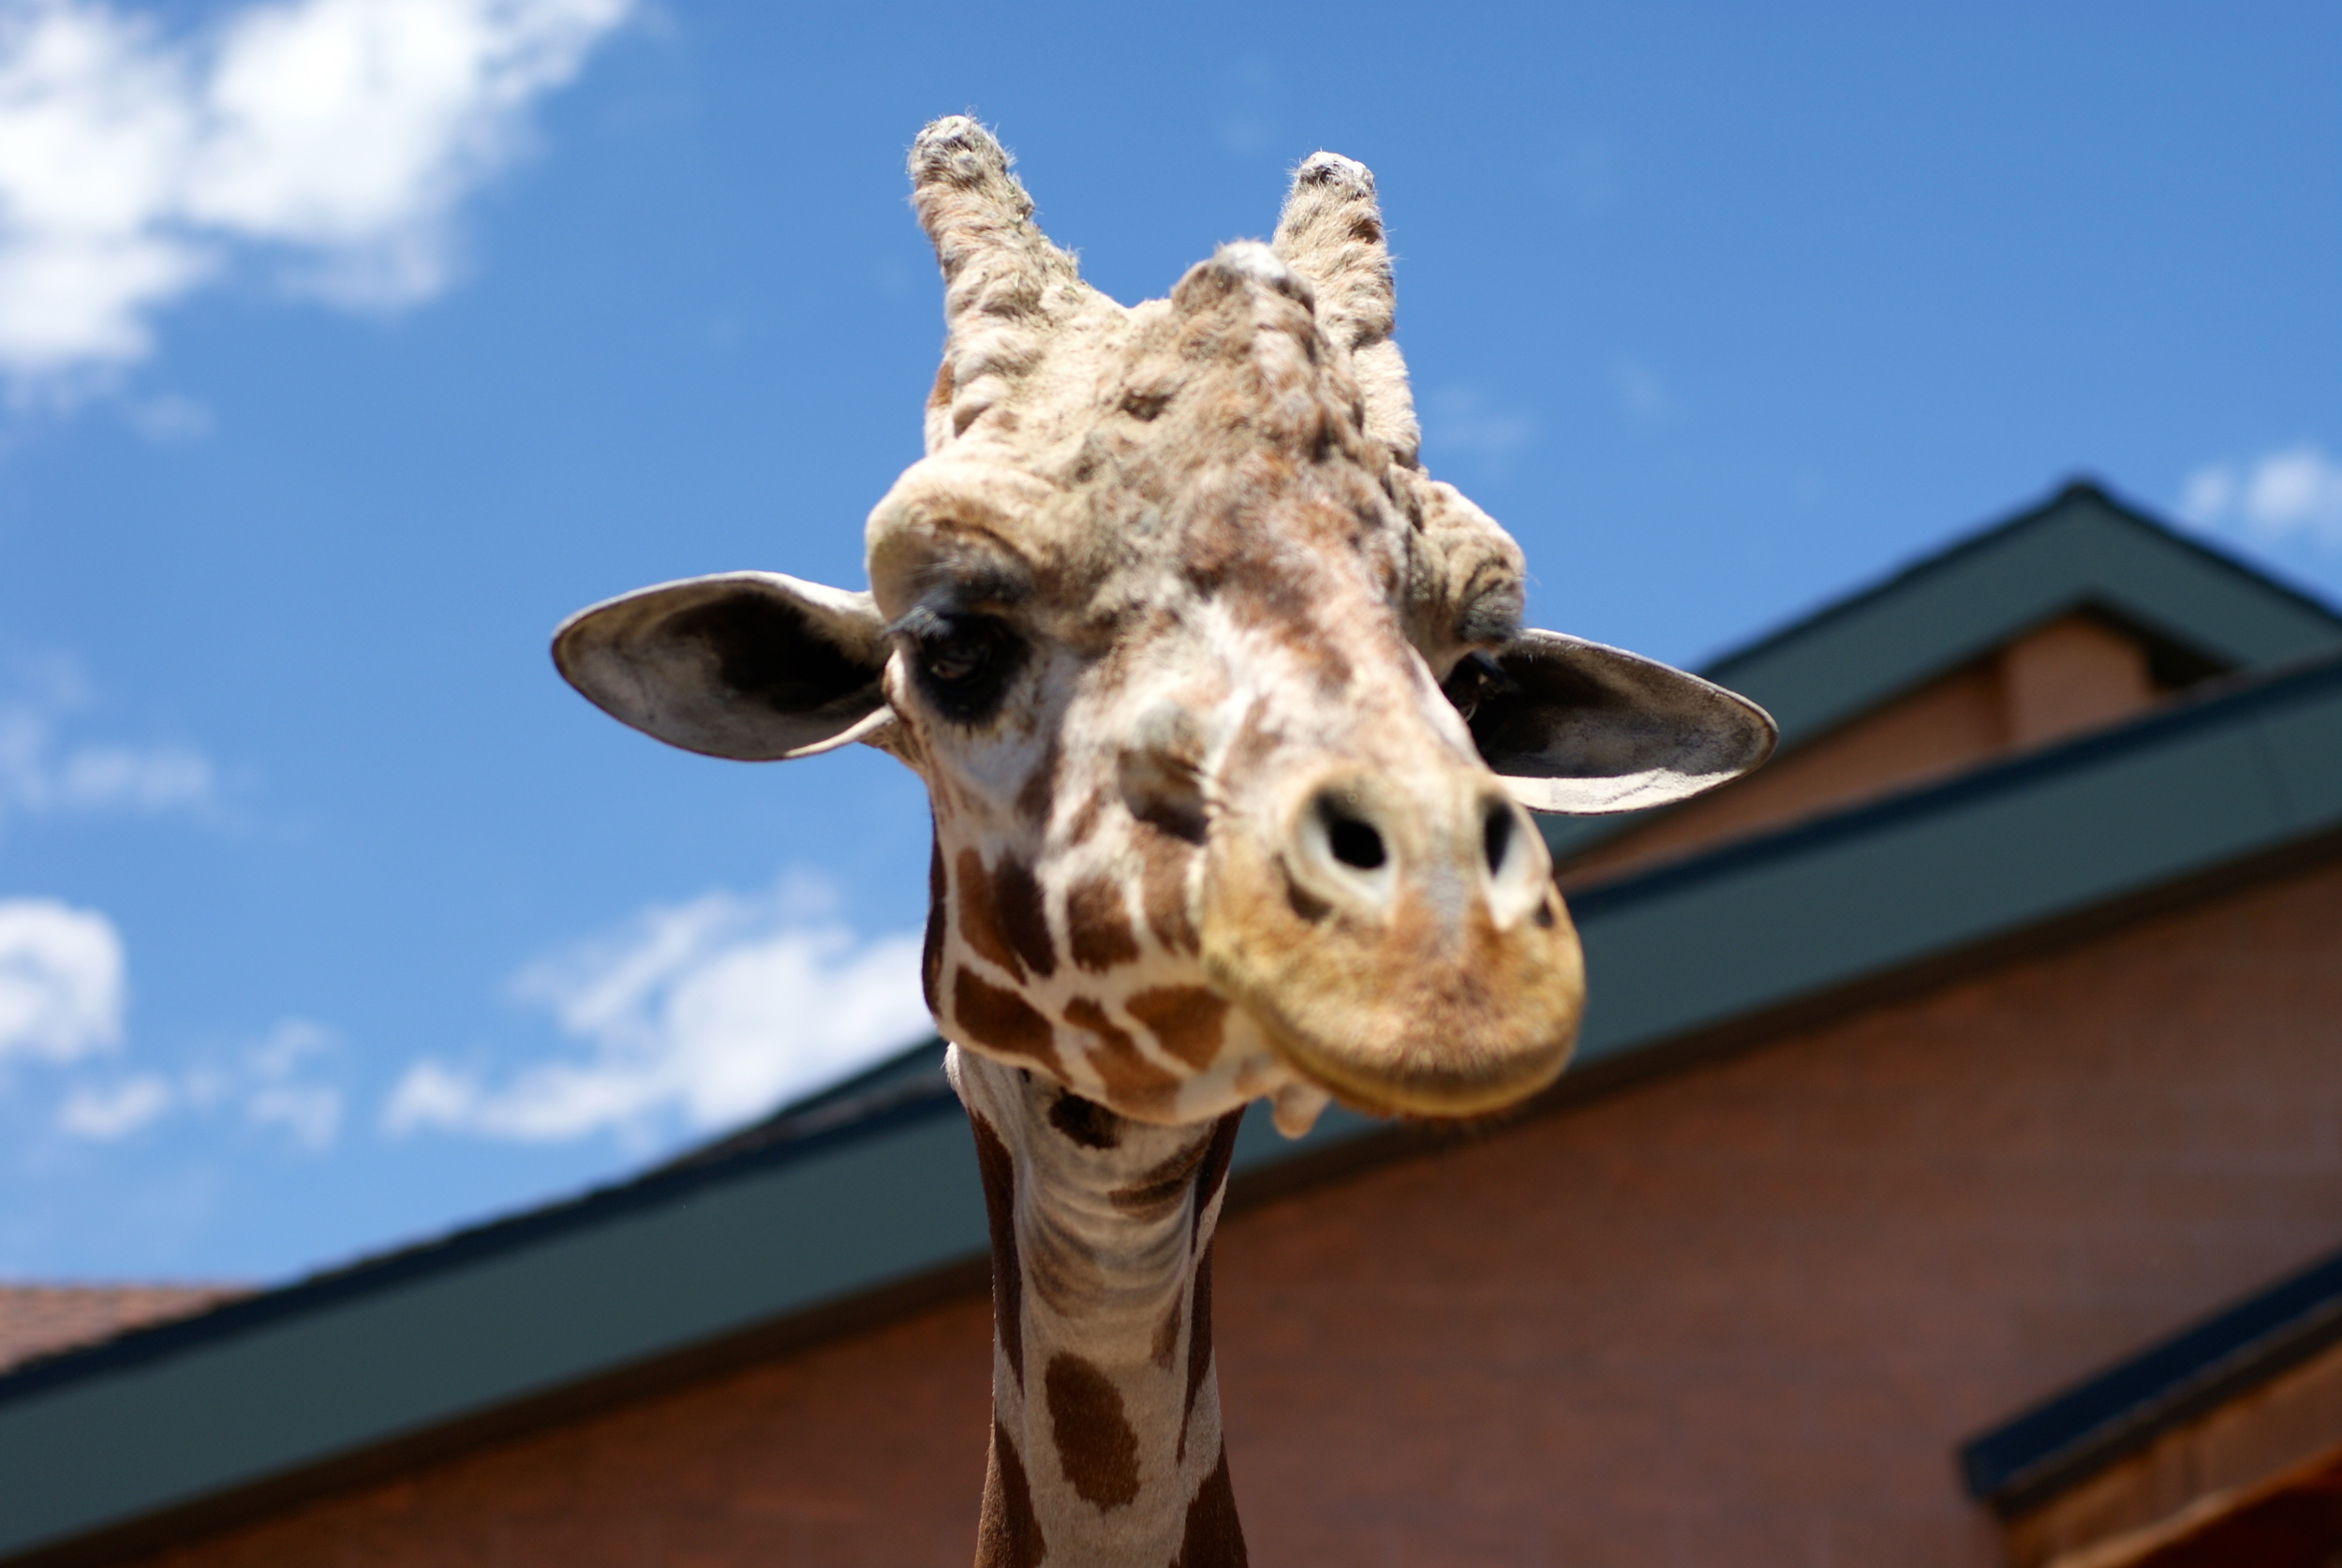 It's not a camel.  But it's the only picture I had close enough. We fed Giraffes at the zoo.  This one wanted it's picture taken.